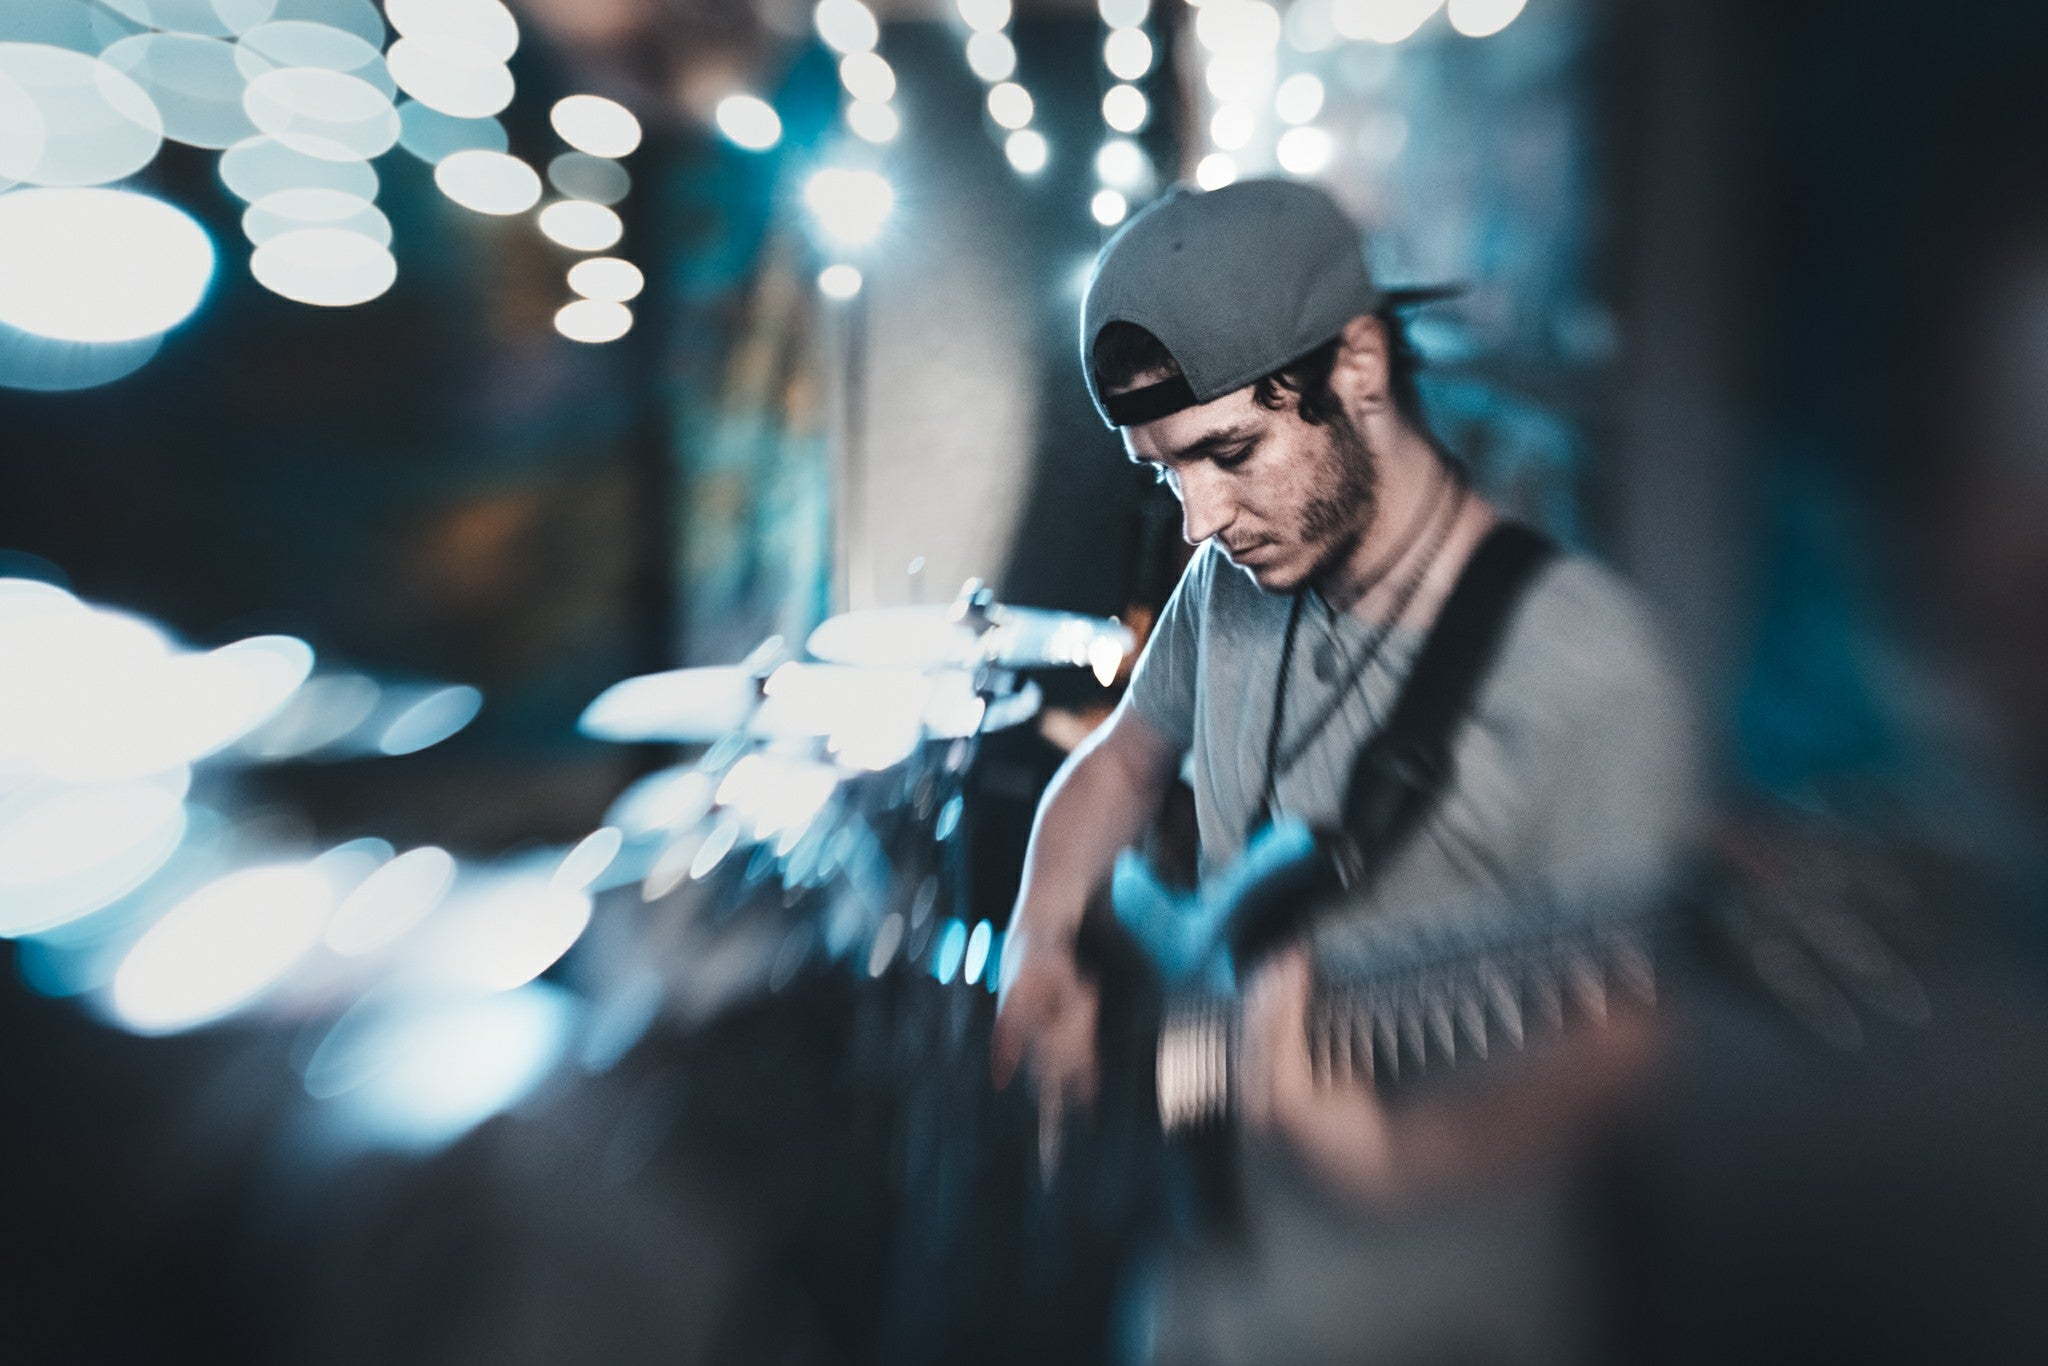 musician concert guitarist man with guitar on stage backwards hat beard selective focus blue lights Lensbaby featured photos